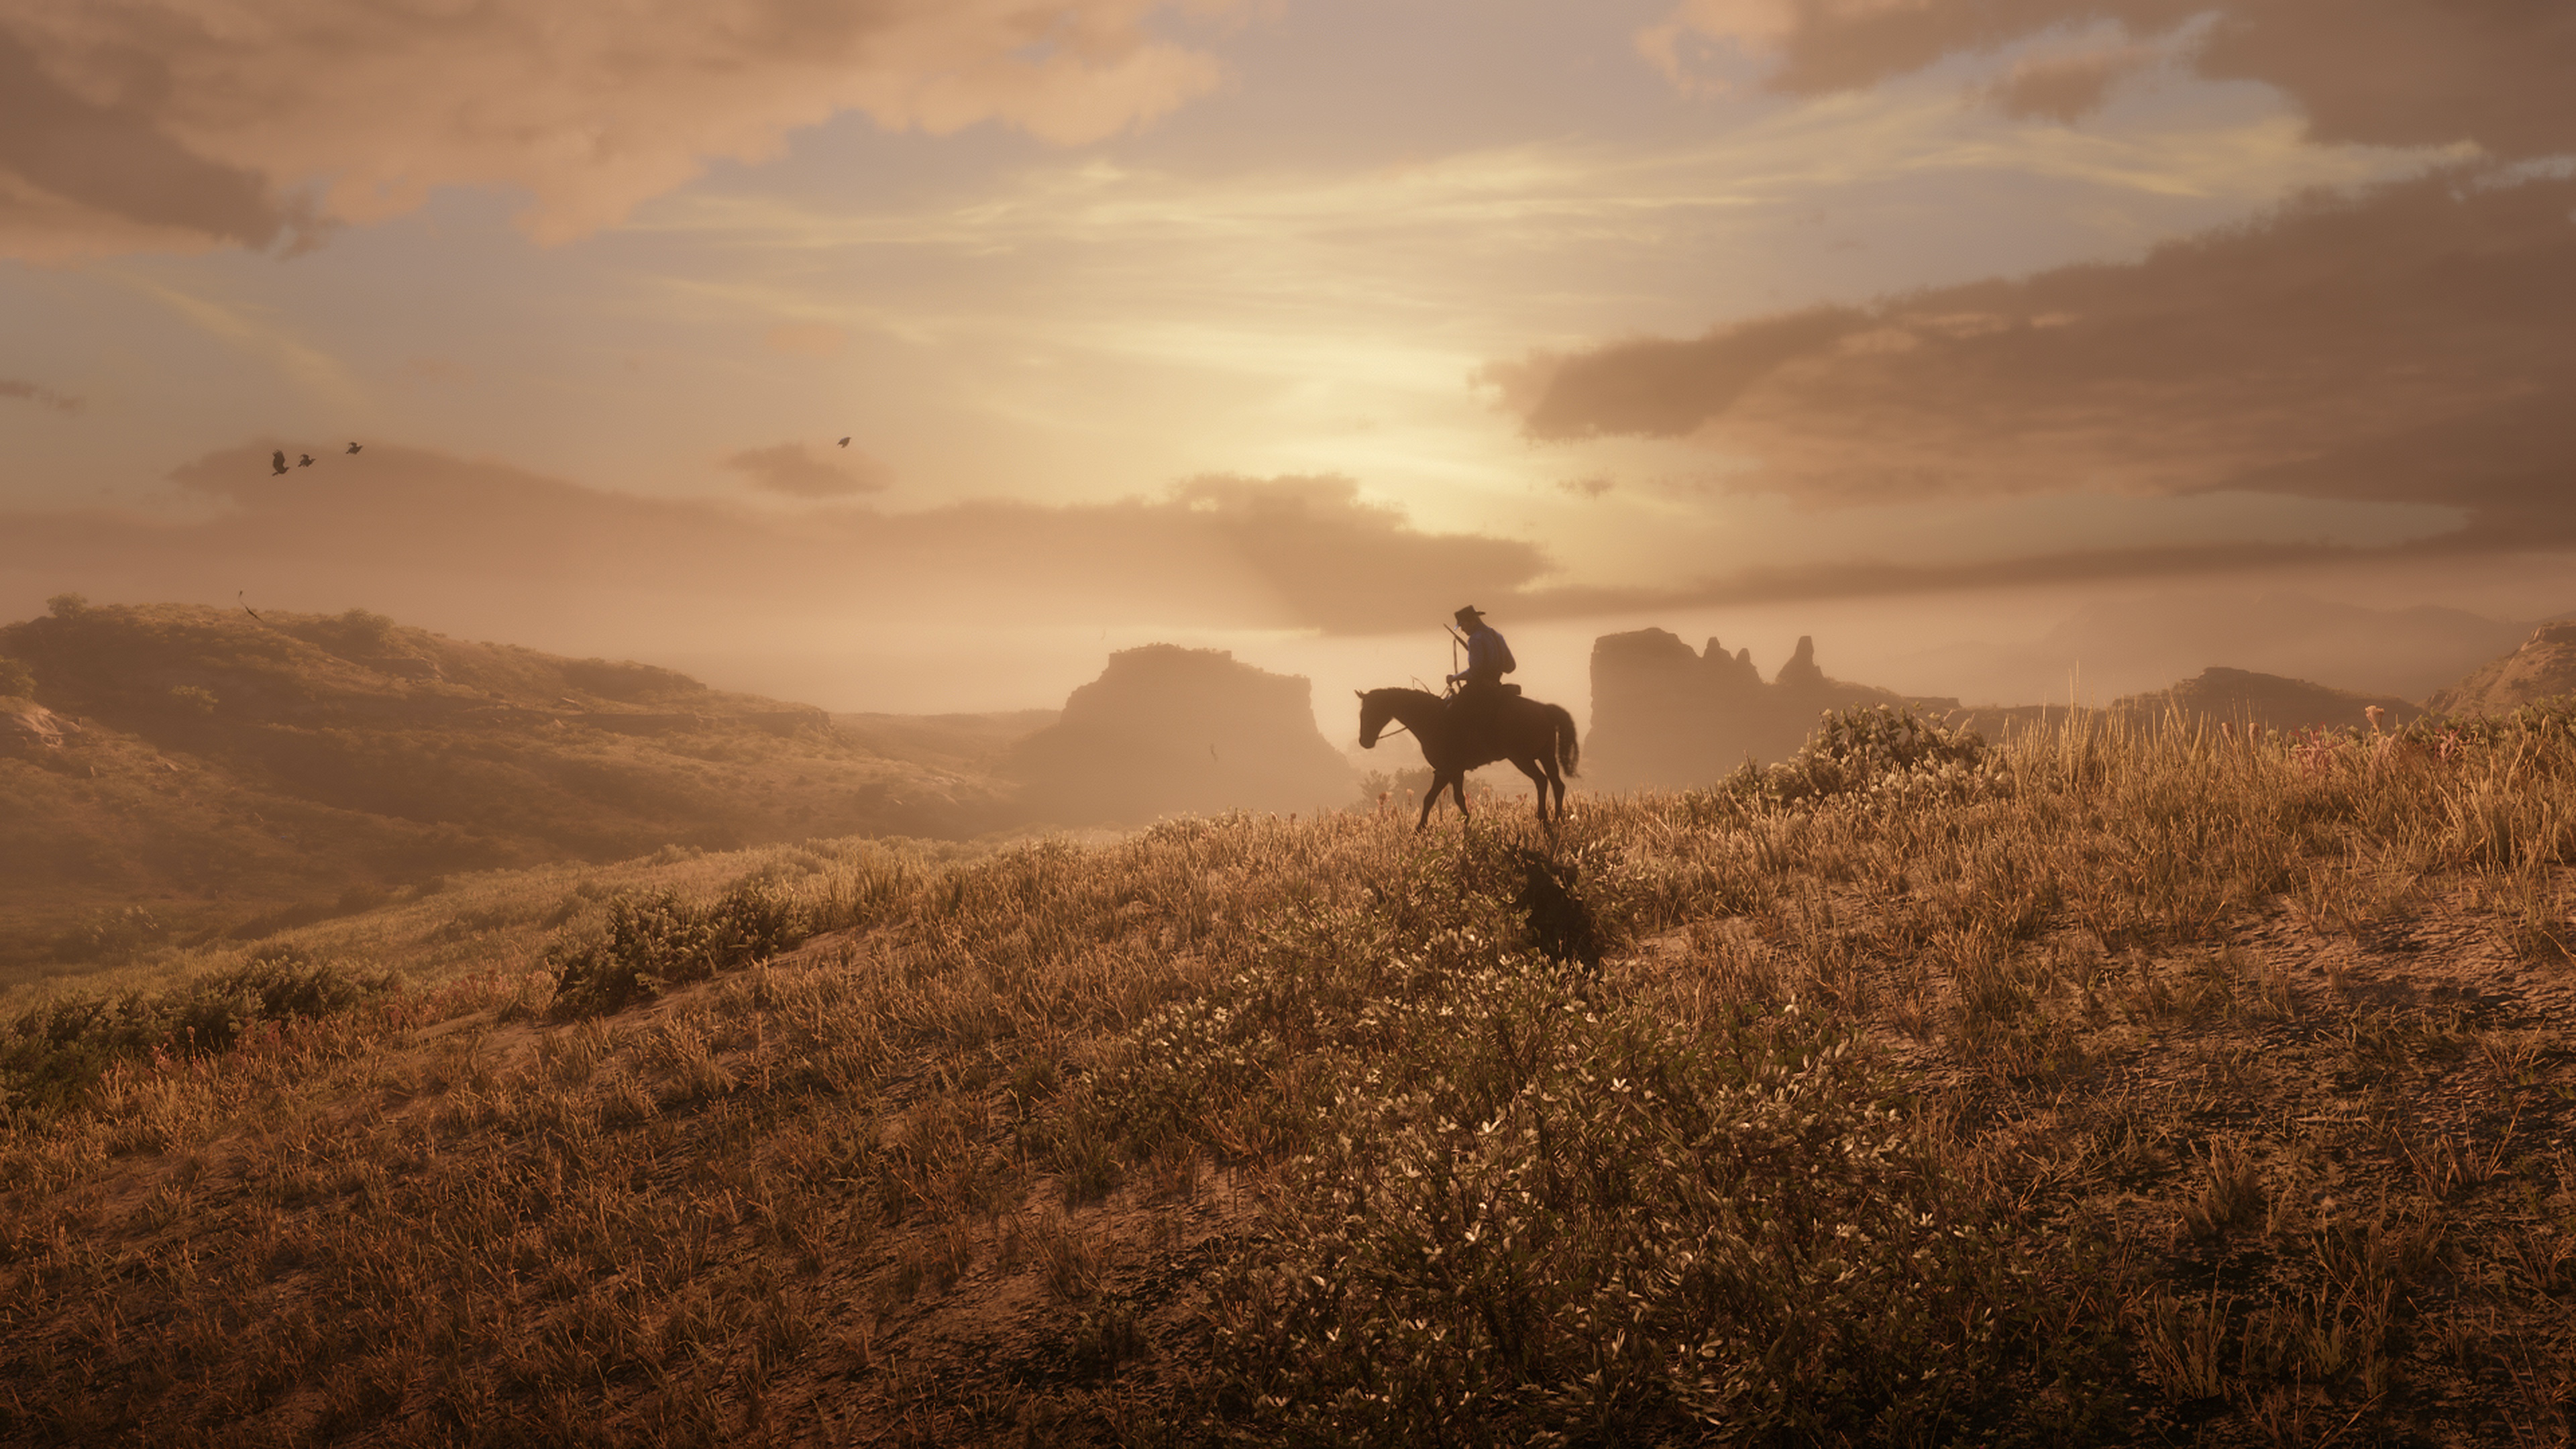 Red Dead Redemption 2 Xbox One 4k, HD Games, 4k Wallpapers